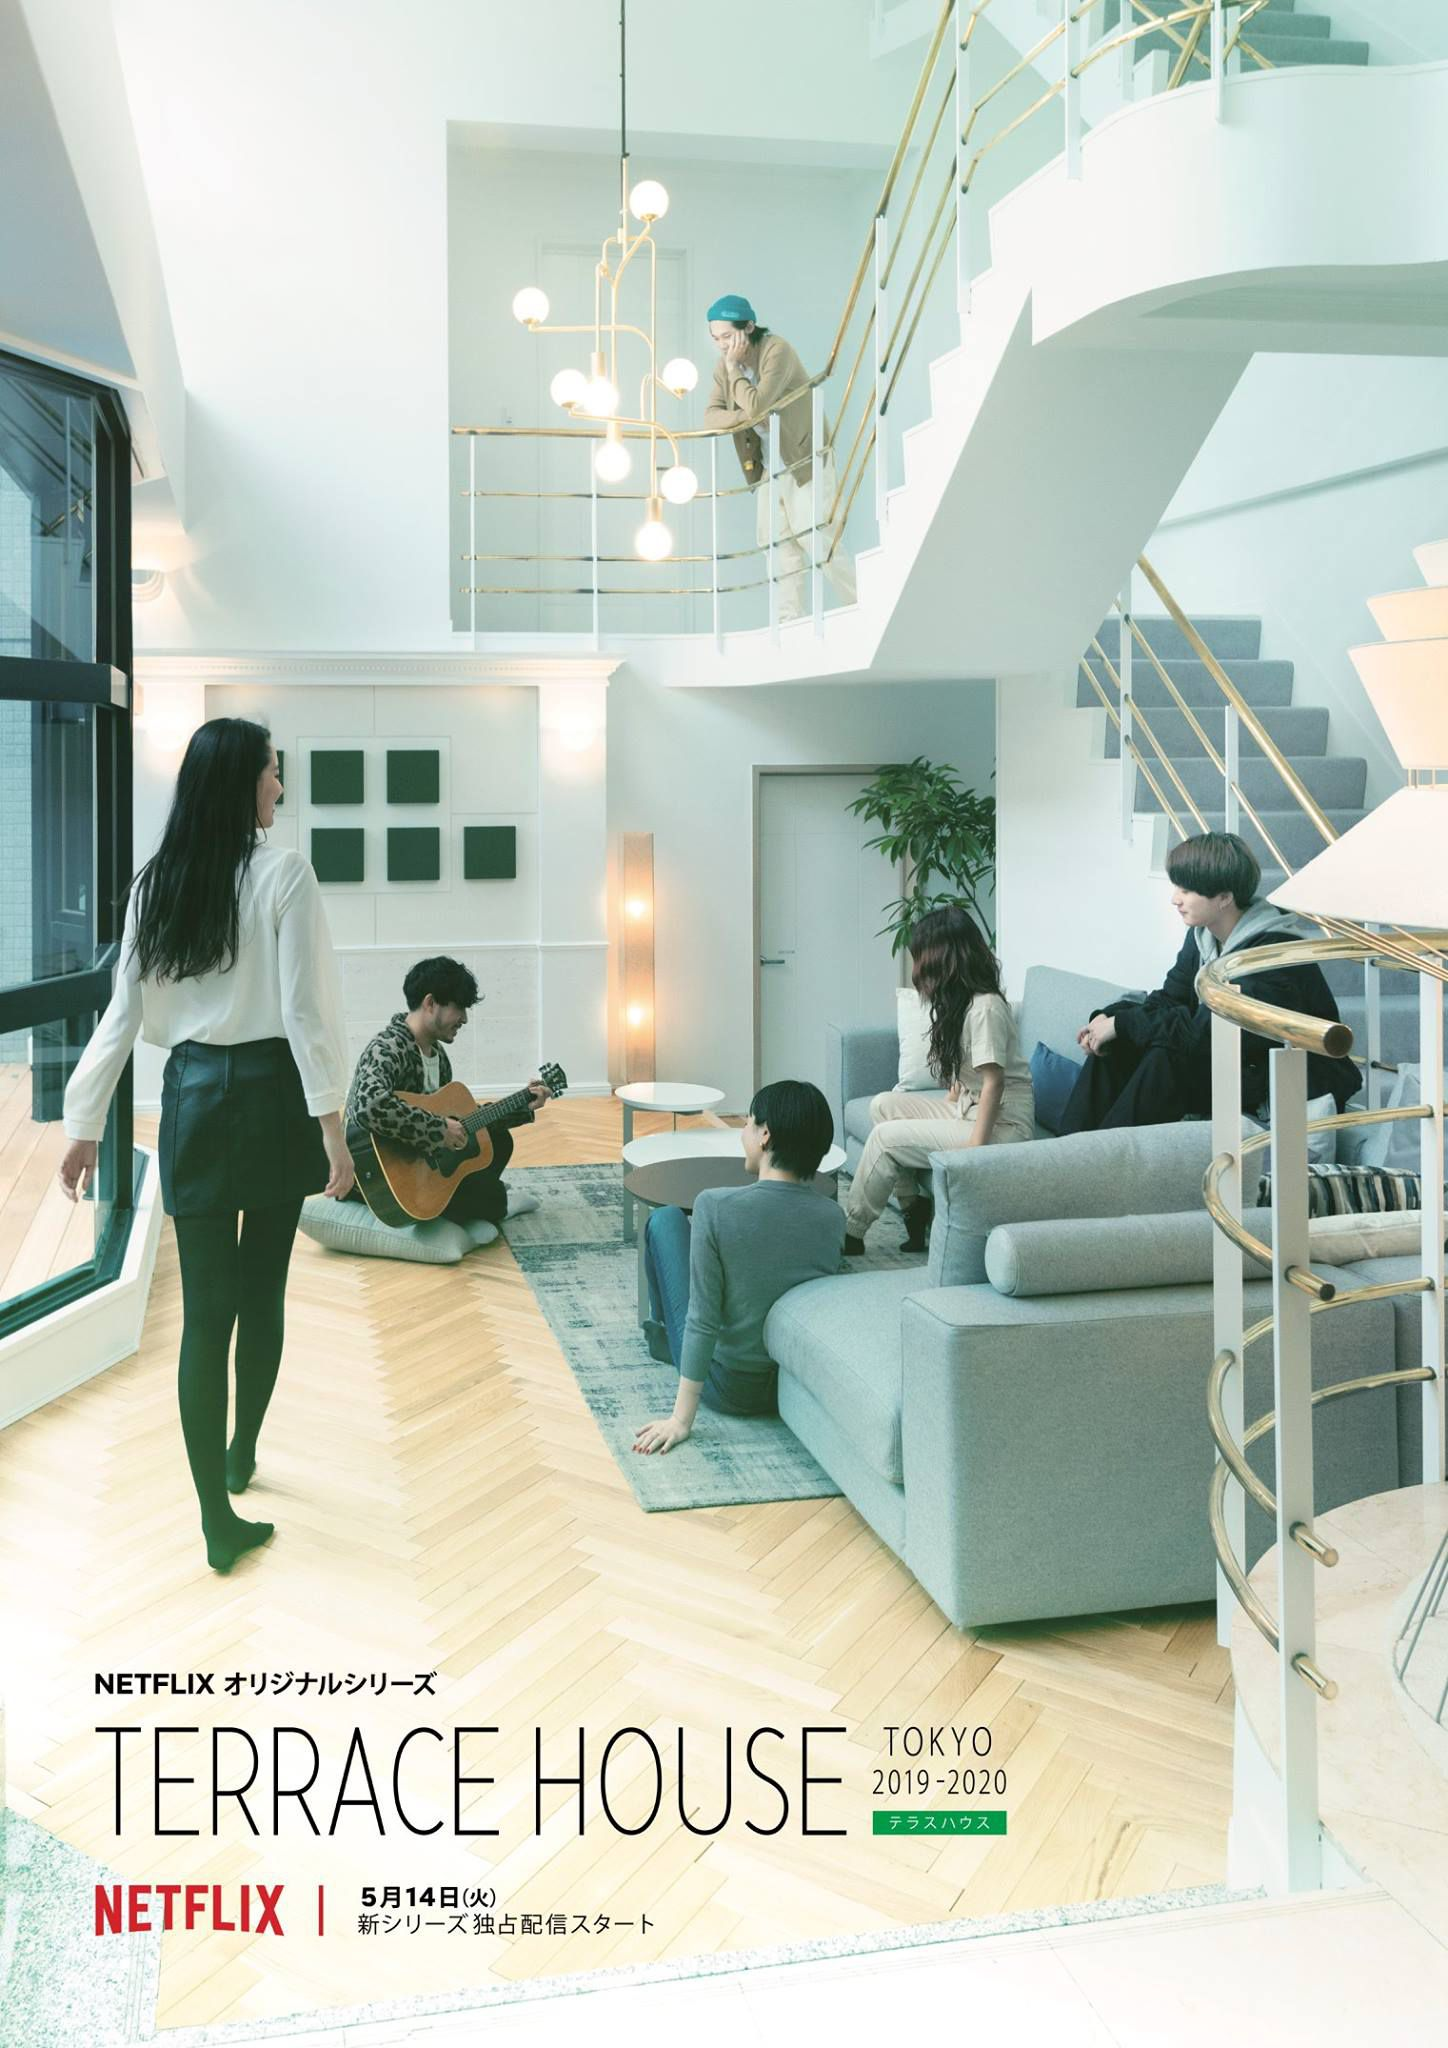 Terrace House: Tokyo 2019-2020 - Émission TV (2019) streaming VF gratuit complet